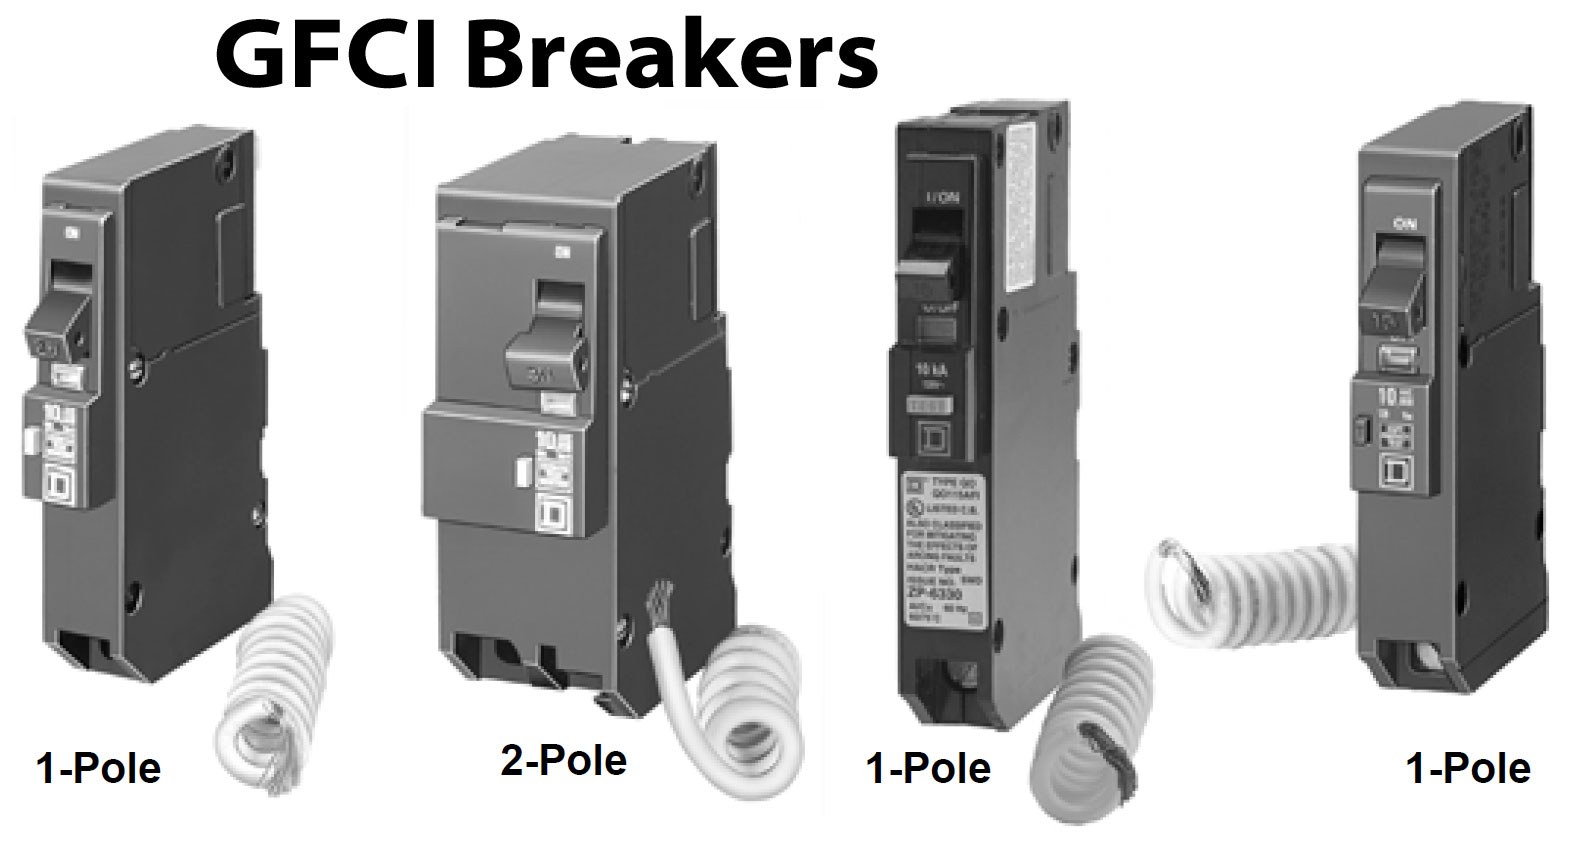 GFCI breakers 1000 how to wire gfci afci circuit breaker 240 volt gfci breaker wiring diagram at aneh.co